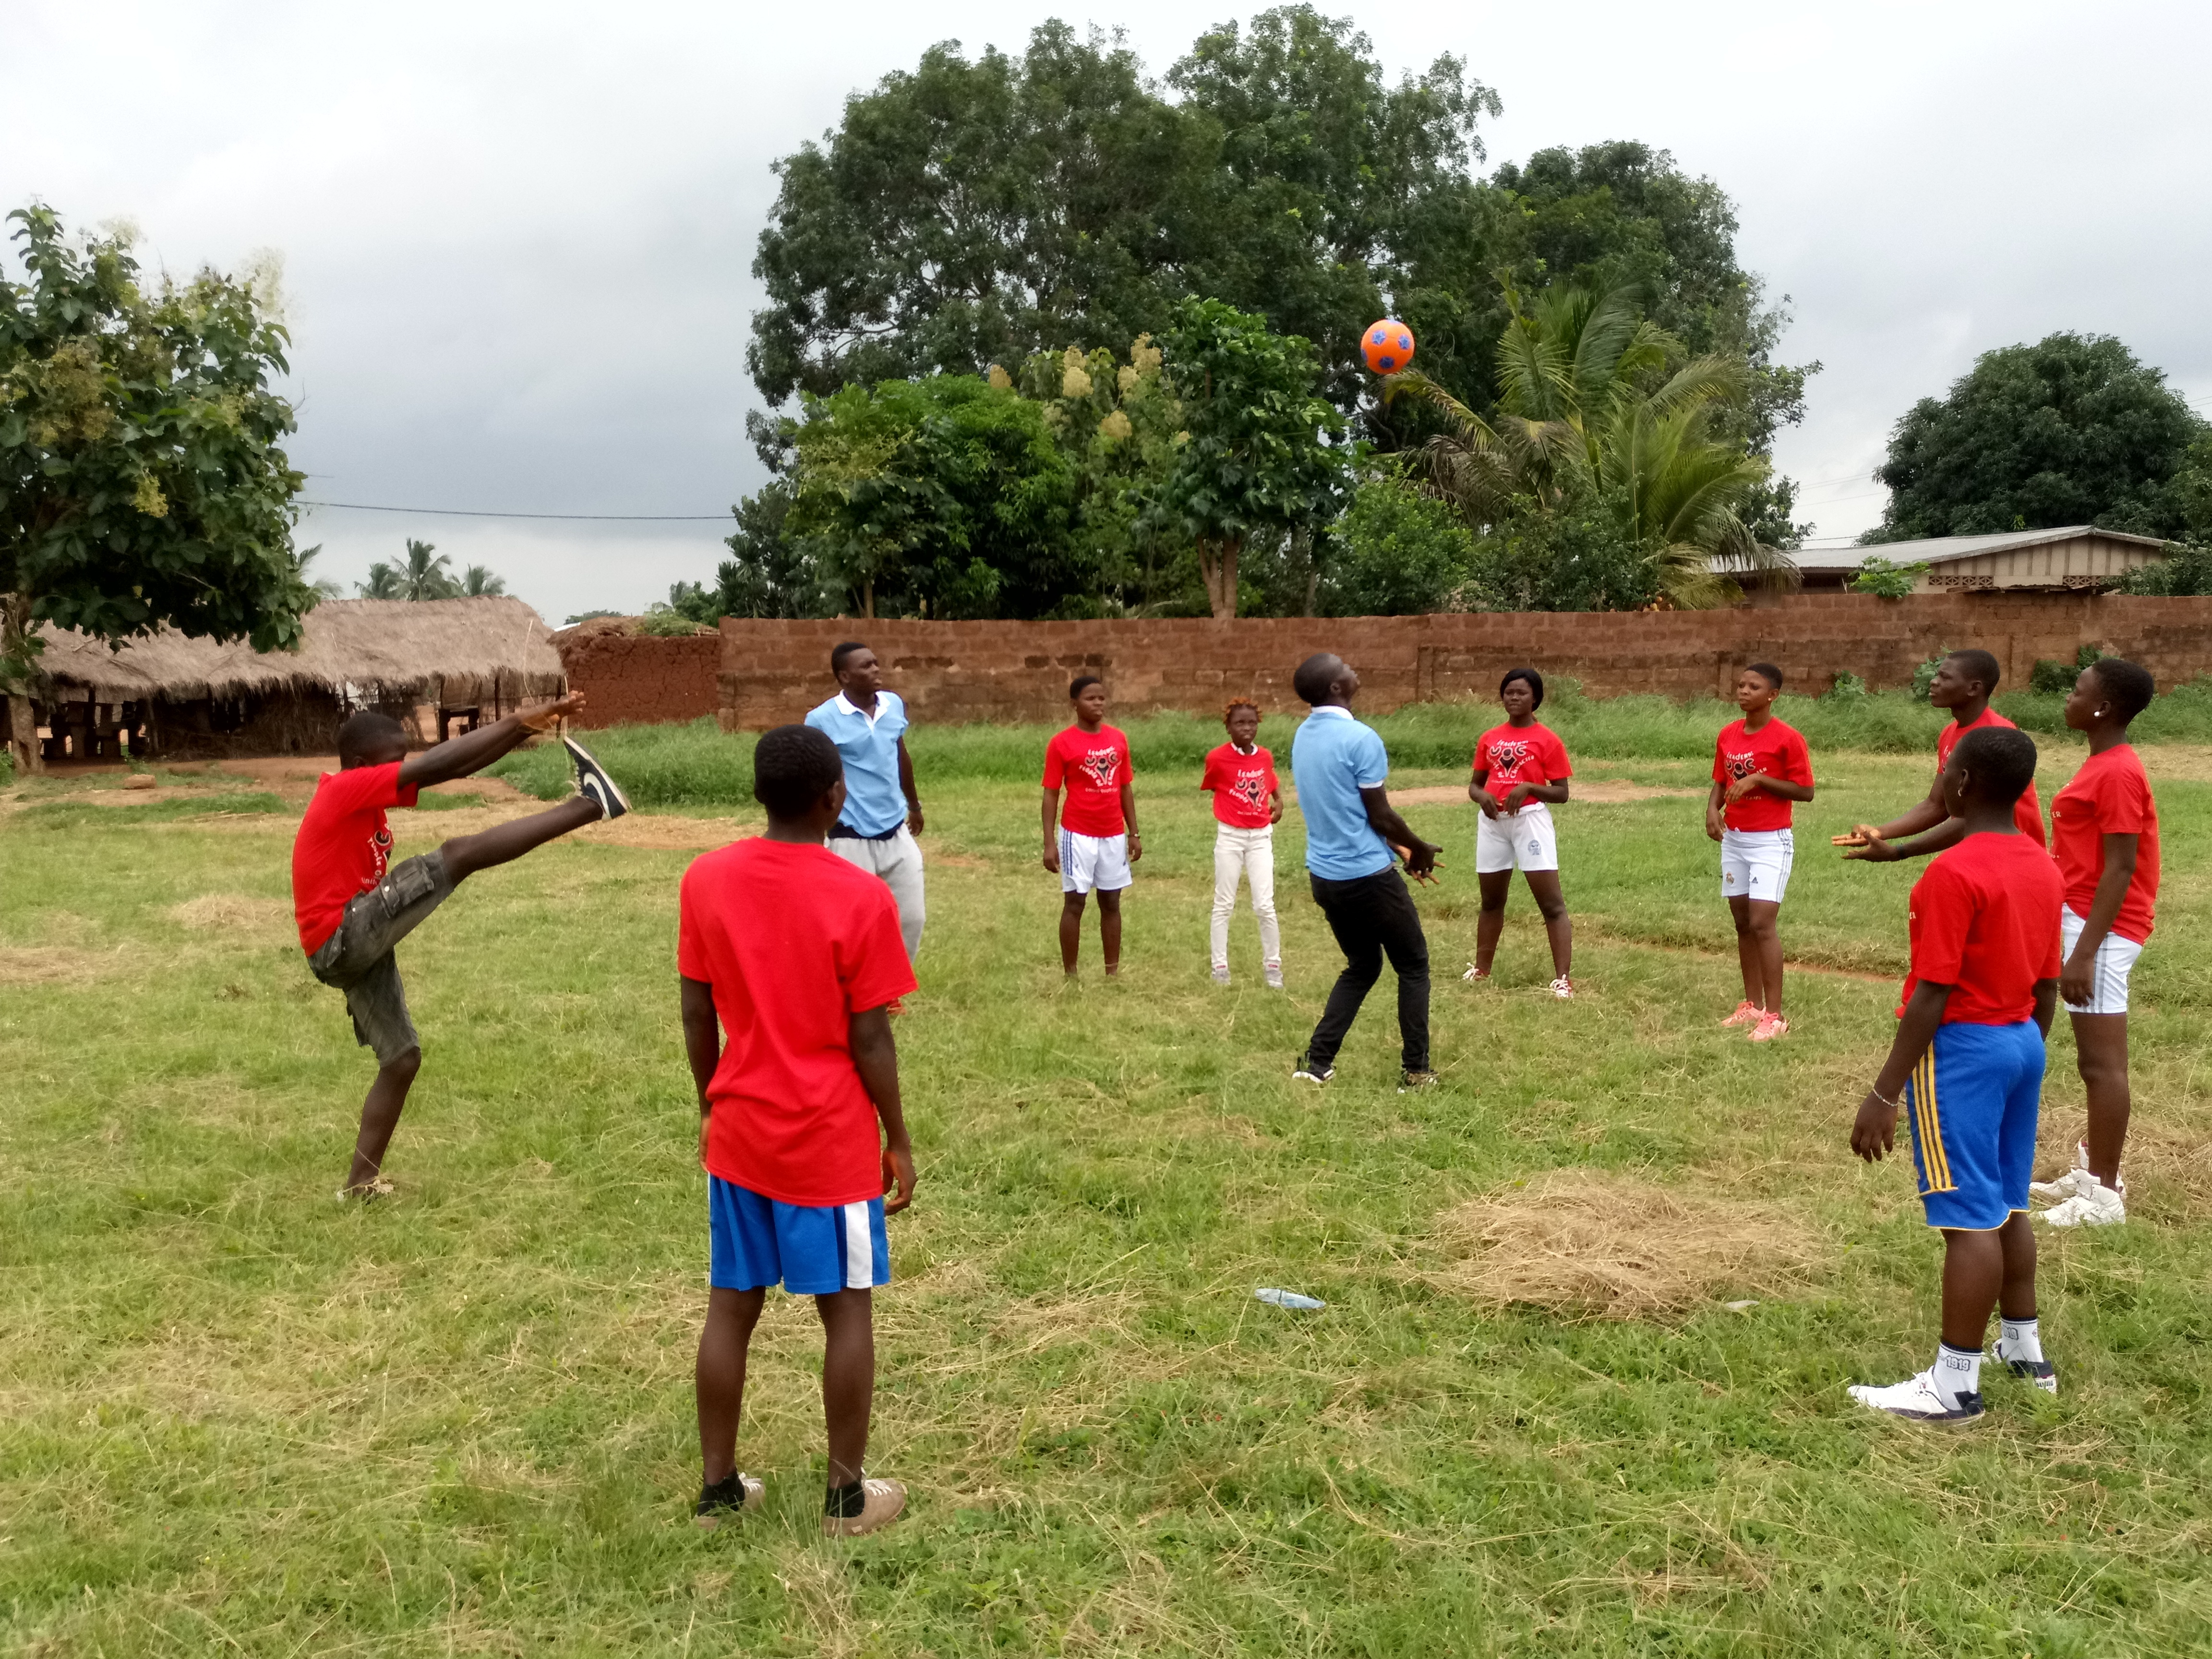 Campers and staff play sports at the youth camp in Togo.